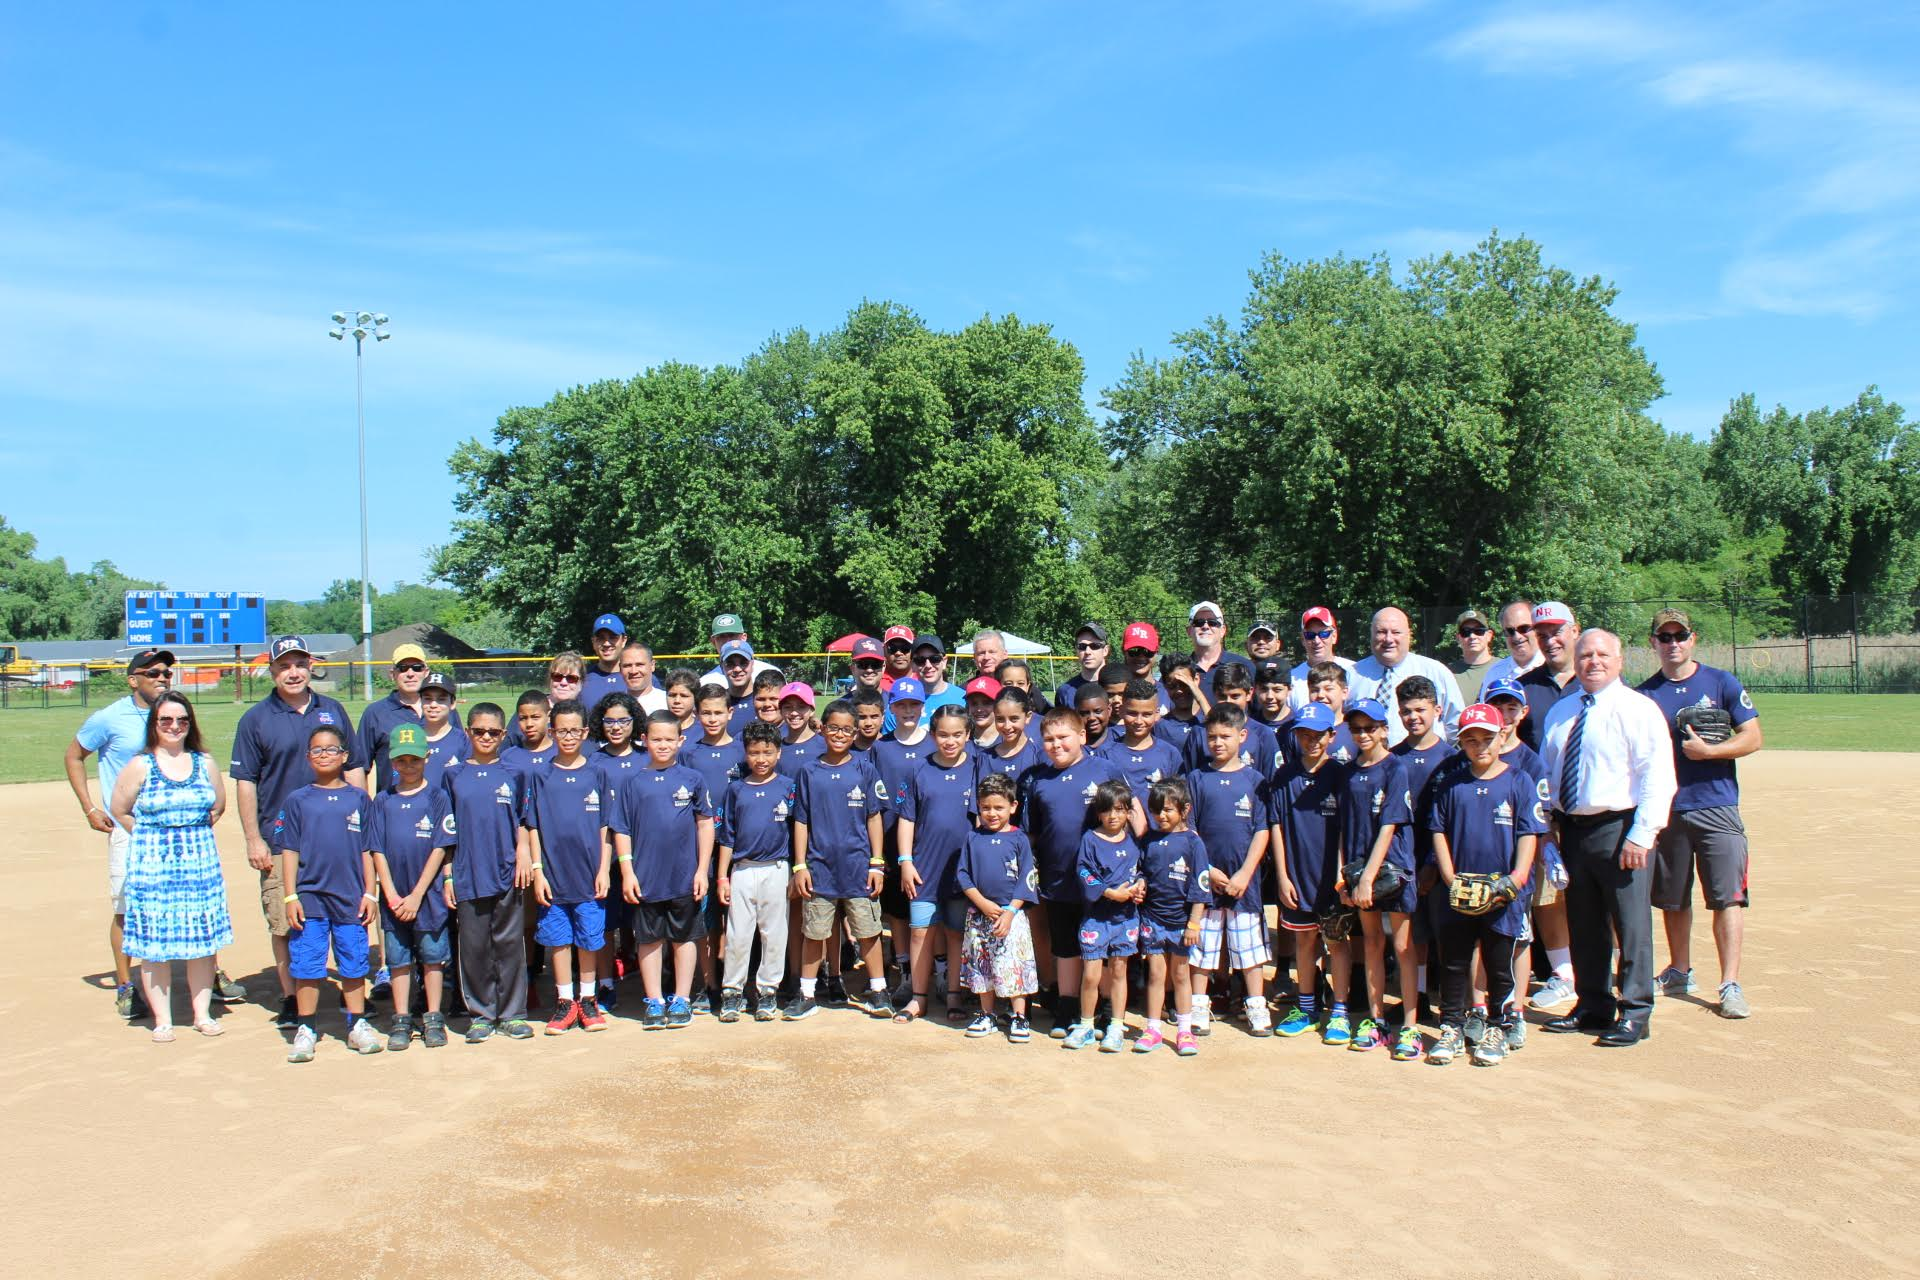 BADGES FOR BASEBALL CLINIC HOSTED BY HAVERSTRAW PAL